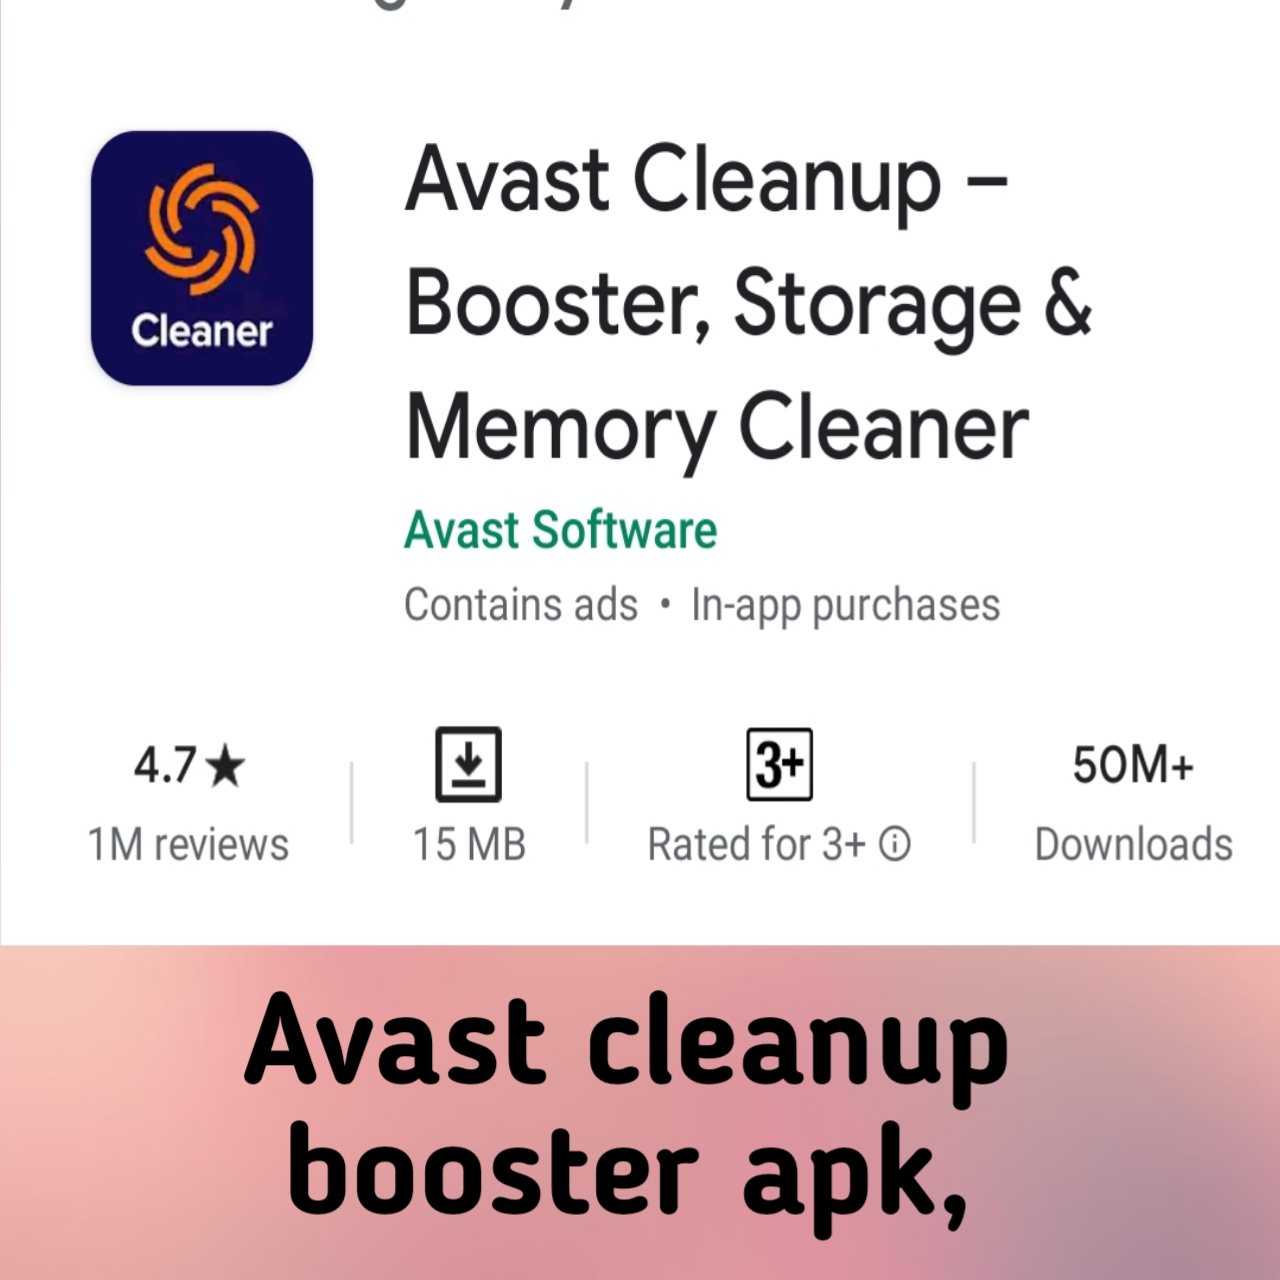 Avast cleanup booster apk,